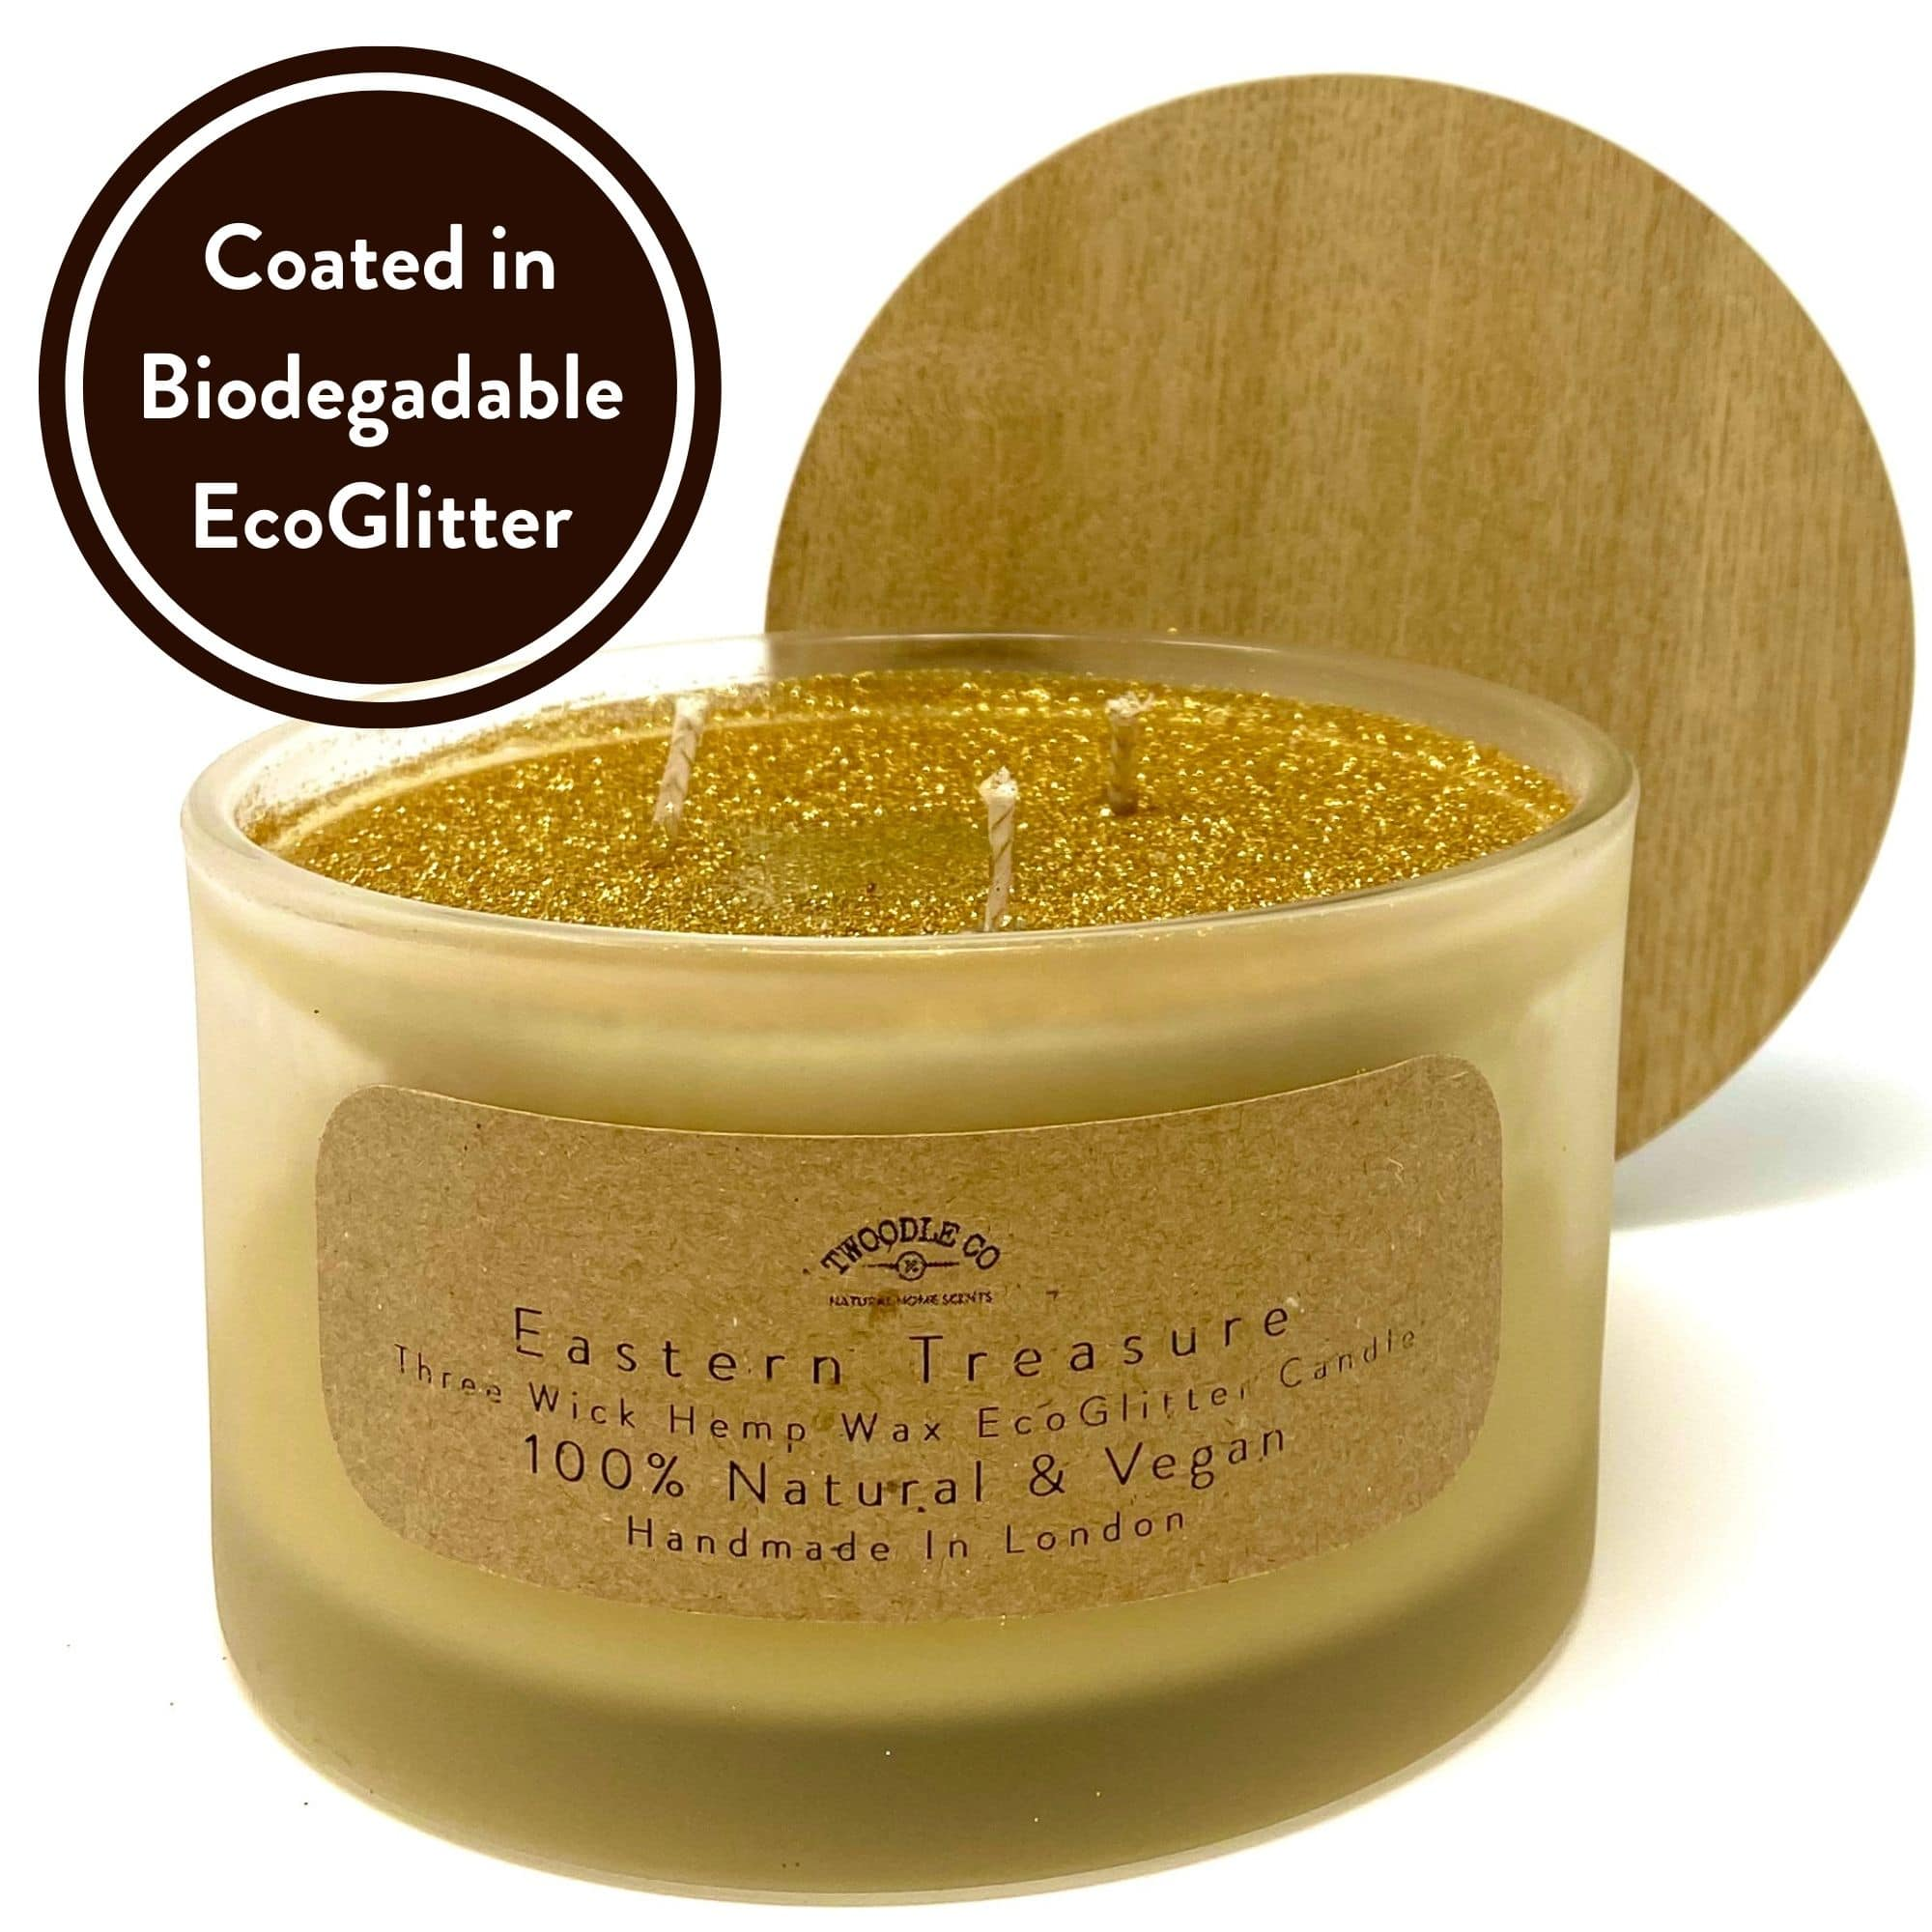 Eastern Treasure Three wick scented candle coated in biodegradable Eco Glitter by Twoodle Co Natural Home Scents